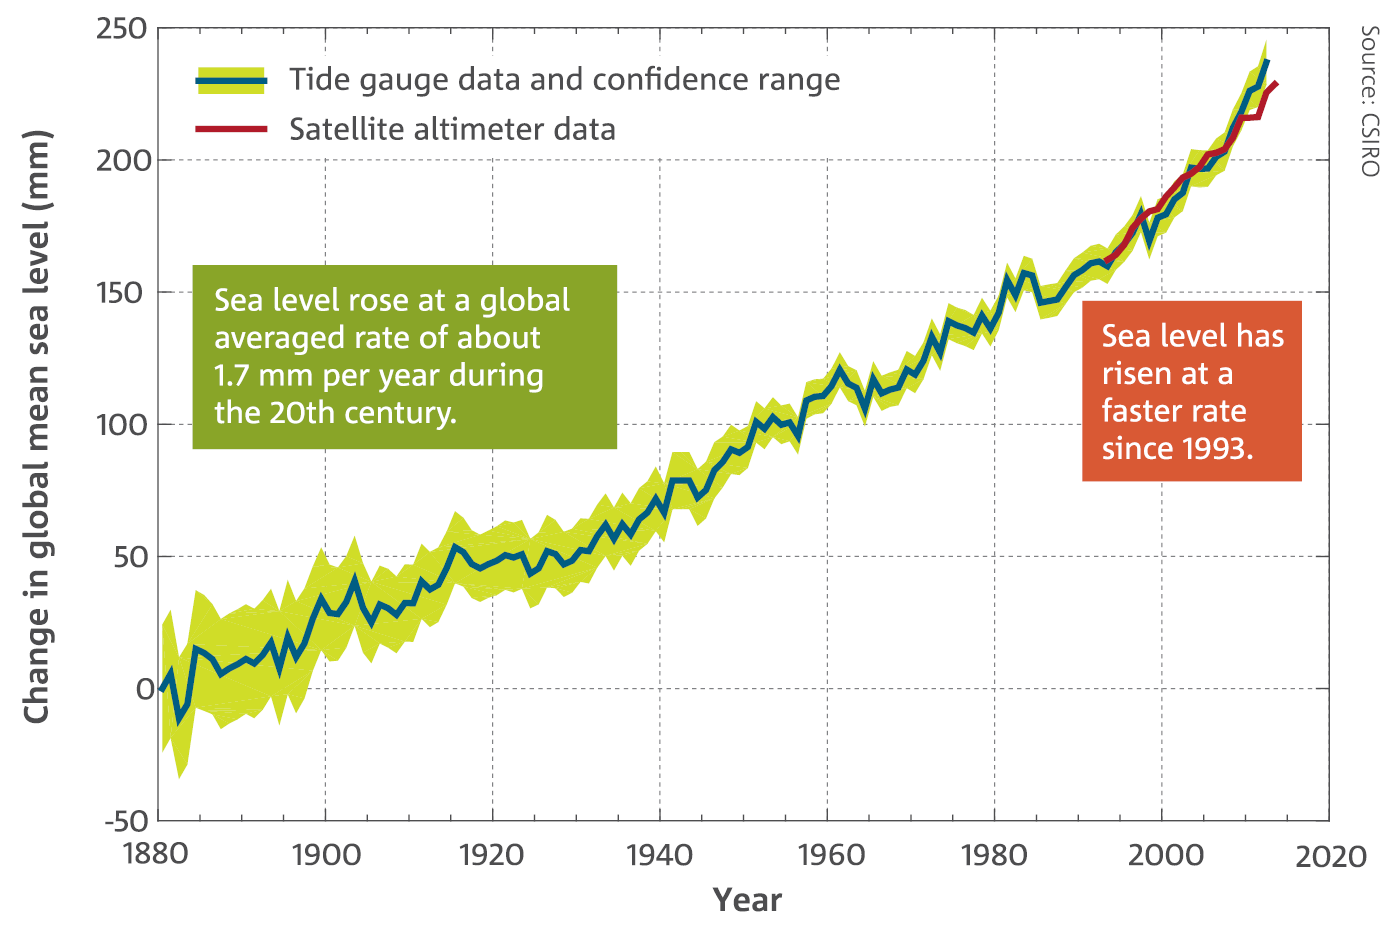 Line chart: High-quality global sea-level measurements from satellite altimetry. Sea level rose at a global averaged rated of about 1.7 mm per year during the 20th century. Sea level has risen at a faster rate since 1993.